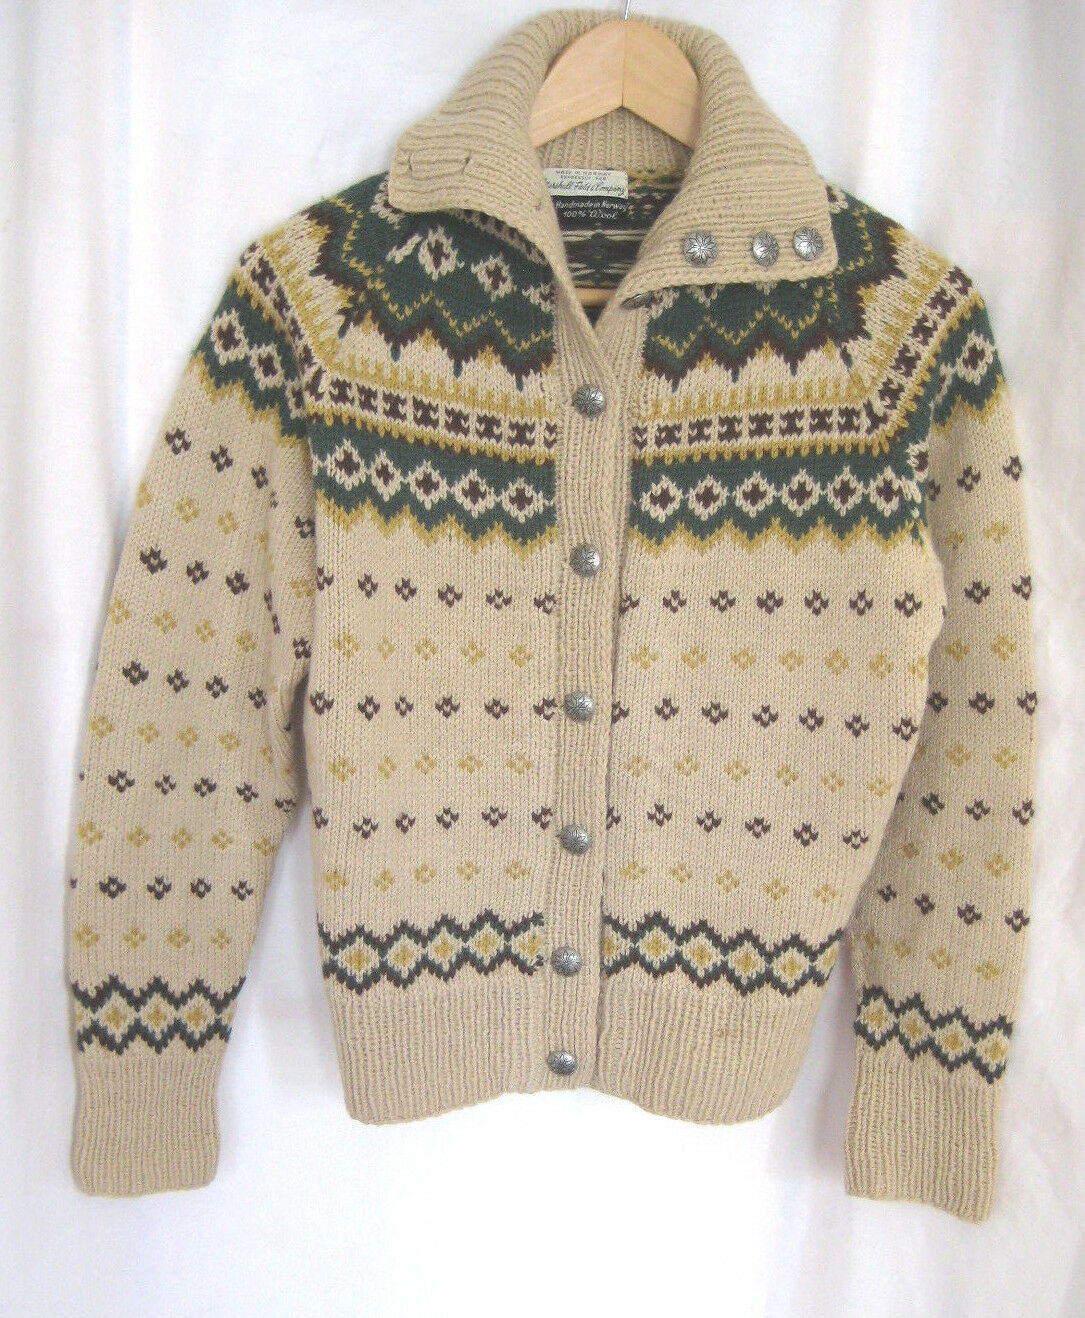 Vintage Handmade in Norway for Marshall Fields 100% Wool Cardigan Sweater S M